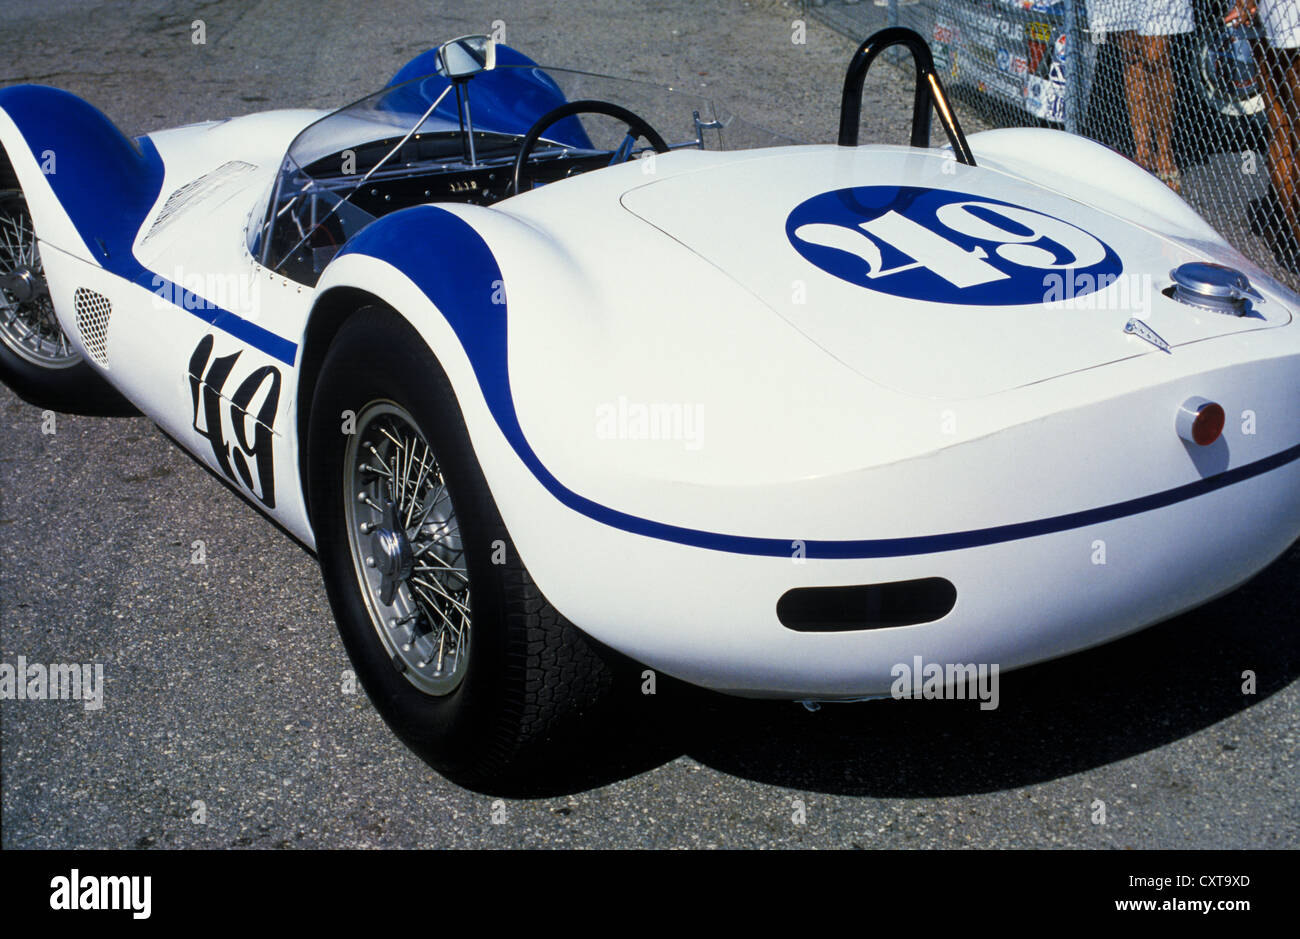 A birdcage Maserati race car at the Monterey Historic Car Races in ...